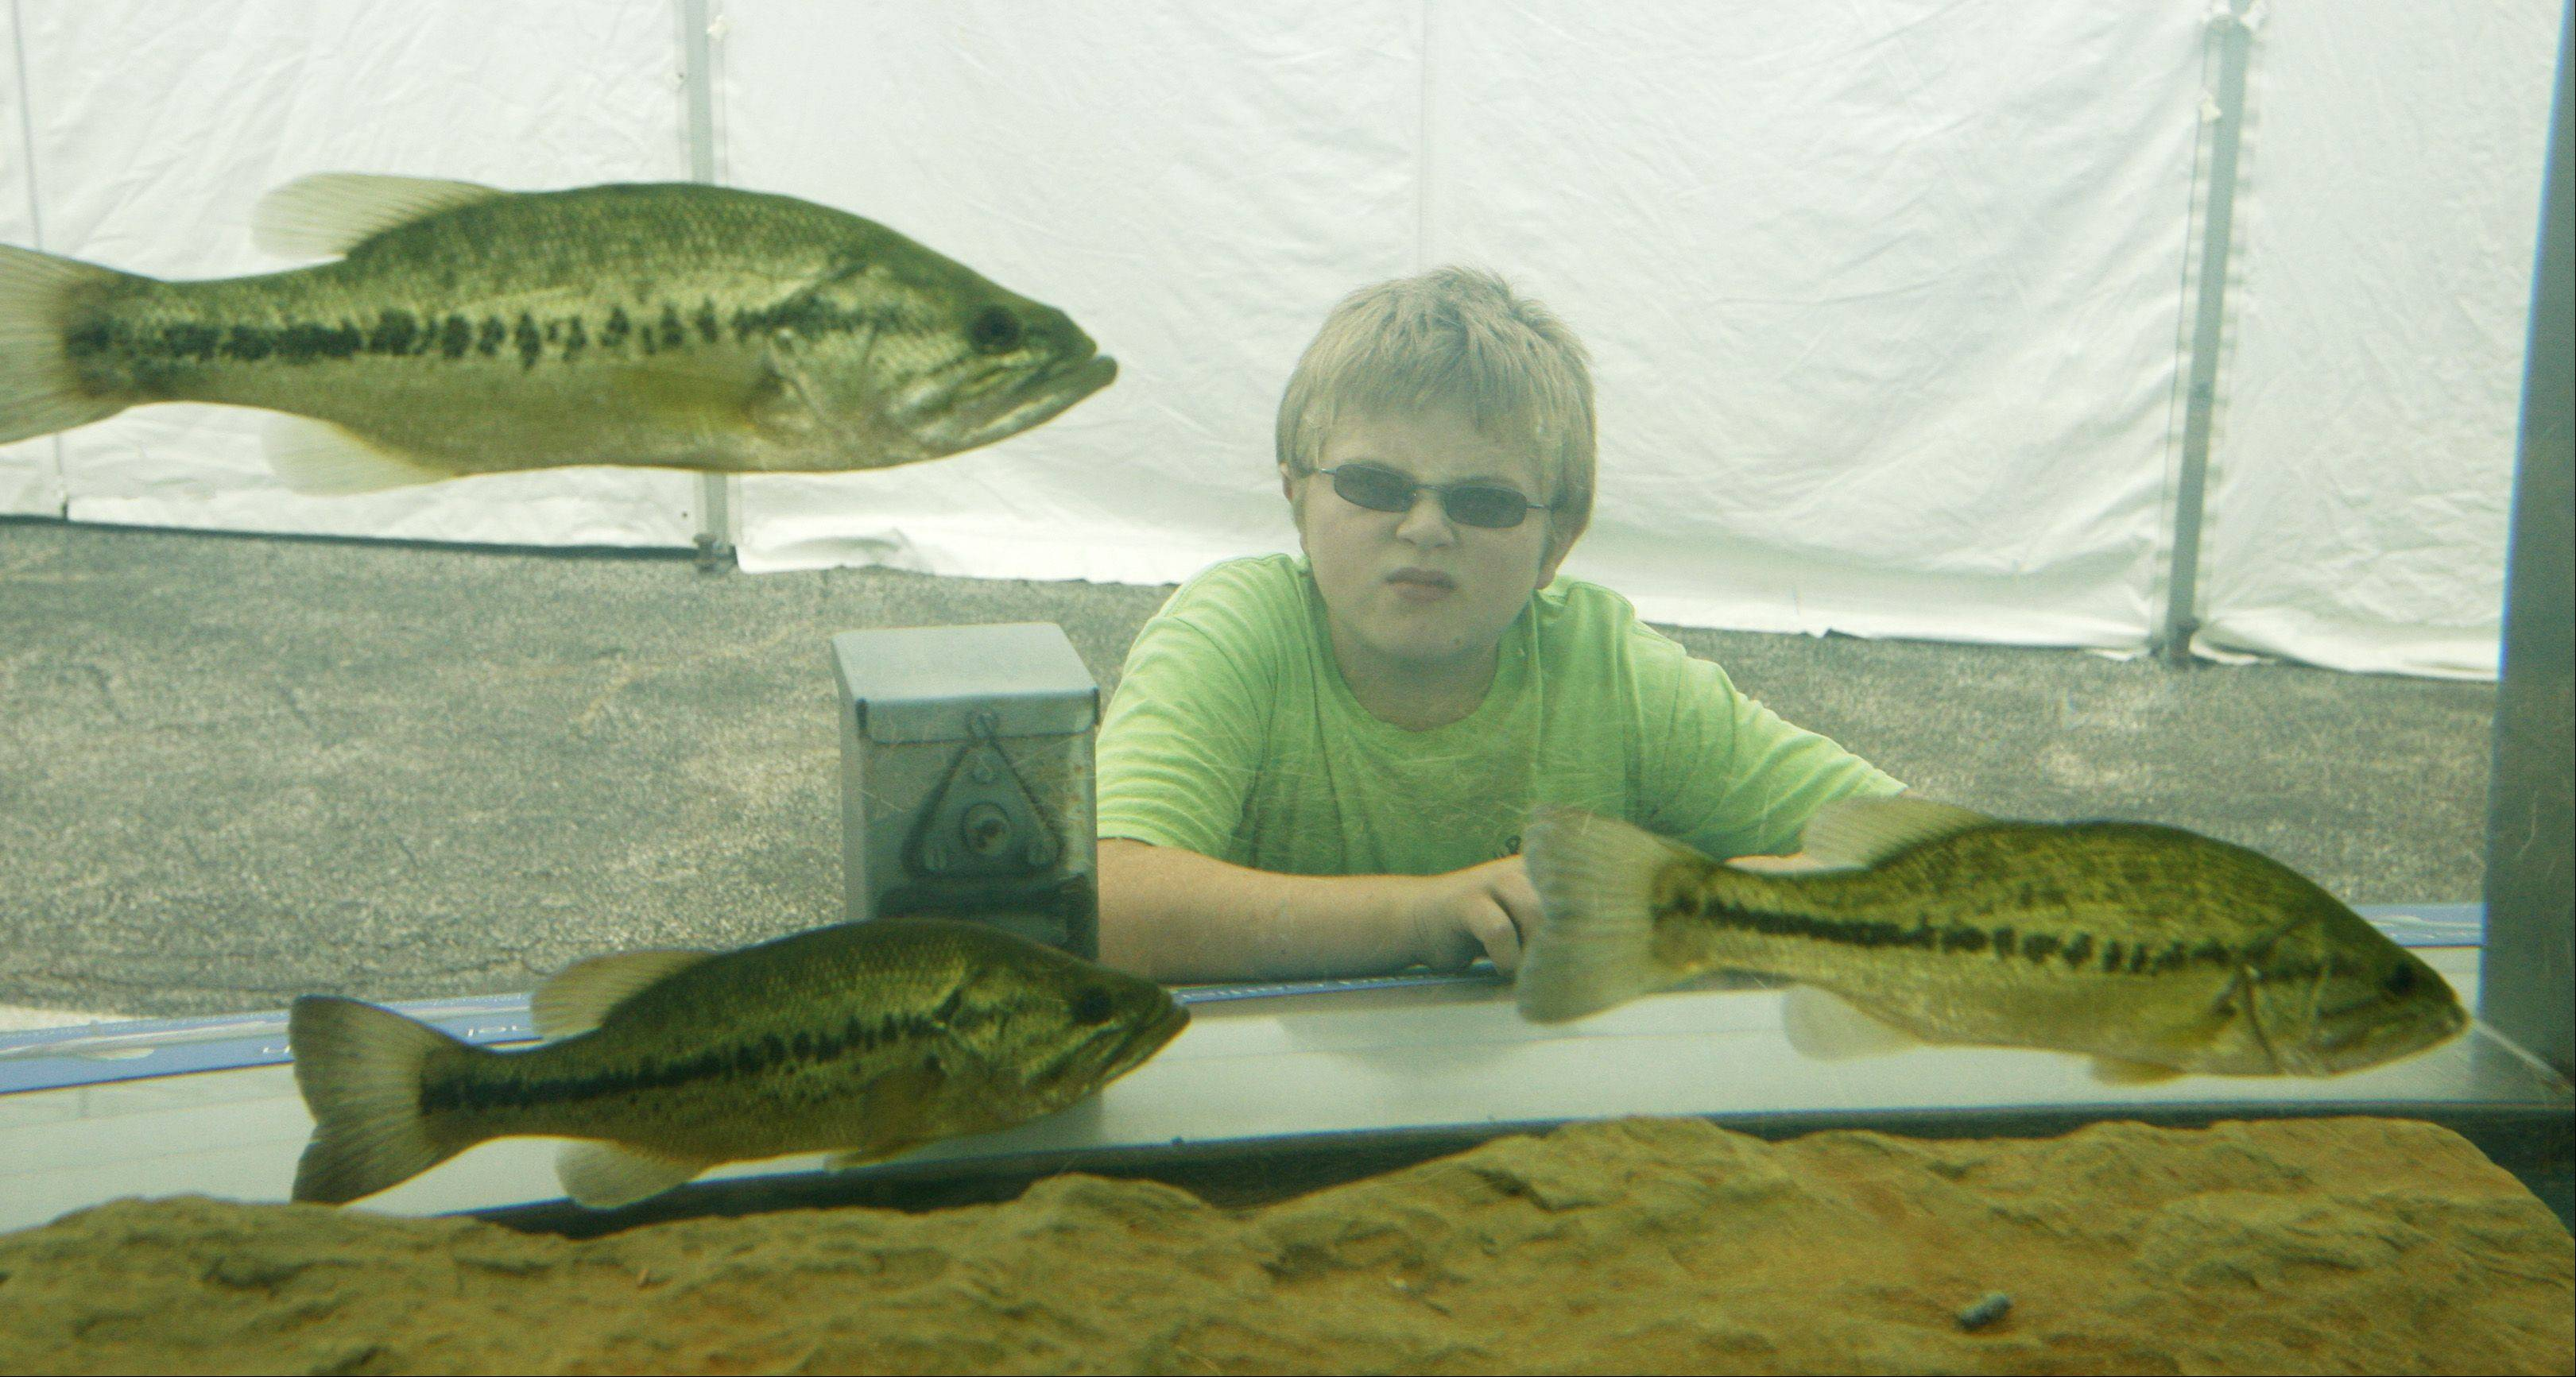 Trenton Owens, 12, of Seneca eyes some largemouth bass at an aquarium exhibit at the DuPage County Fair. All fish inside the tank were caught in DuPage rivers and streams.